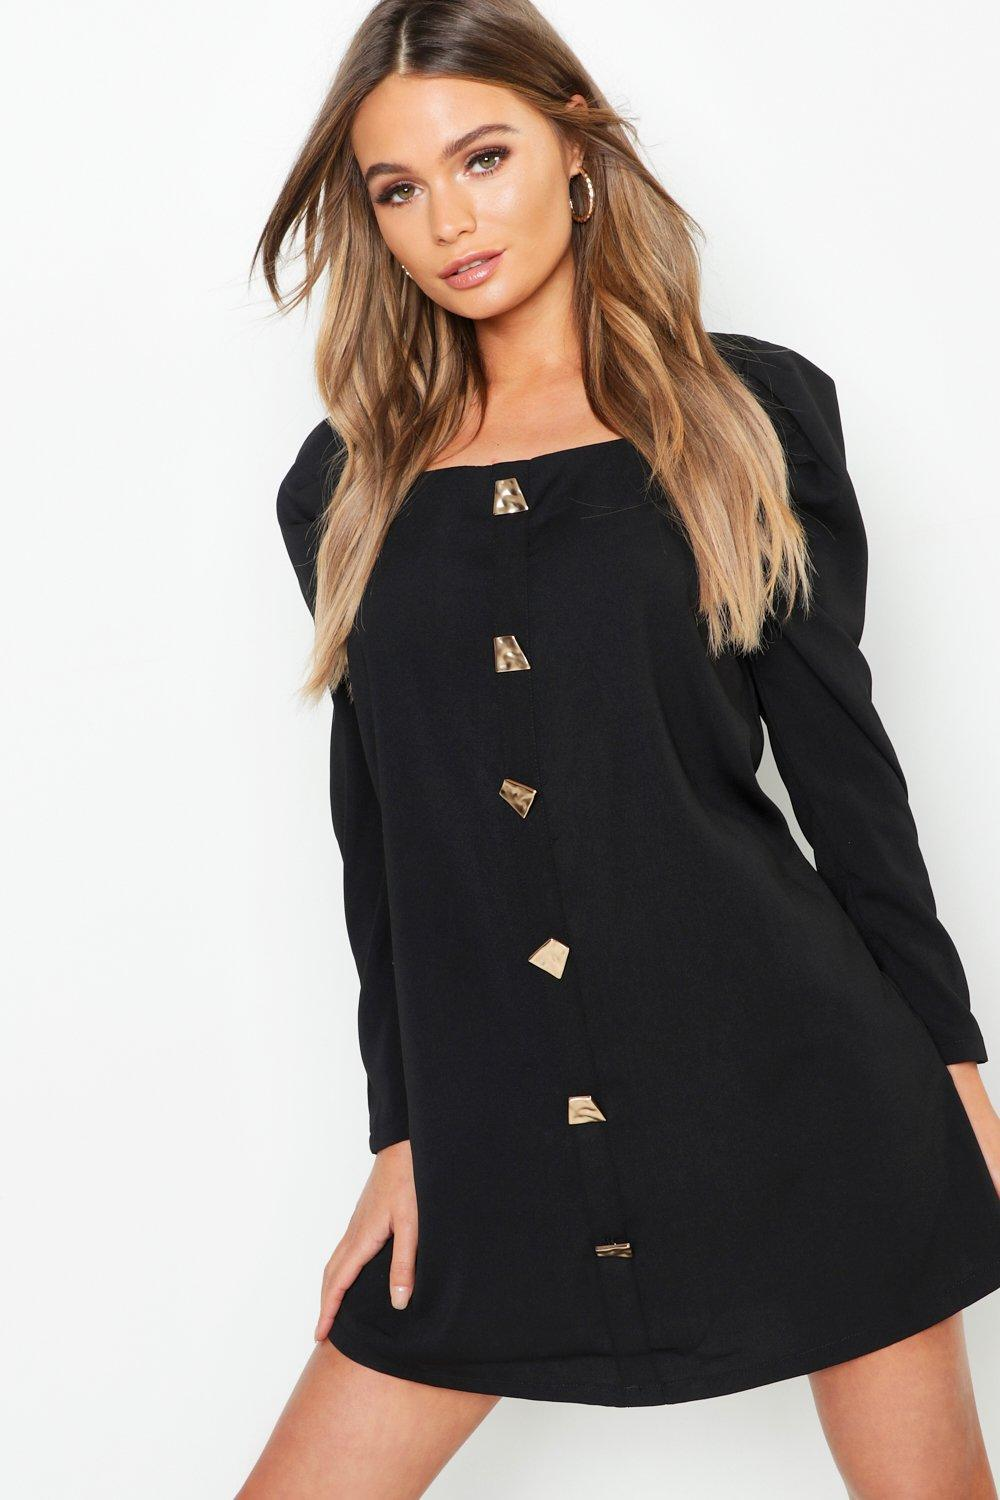 a4297def00f Boohoo. Women s Black Square Neck Volume Sleeve Button Front Shift Dress